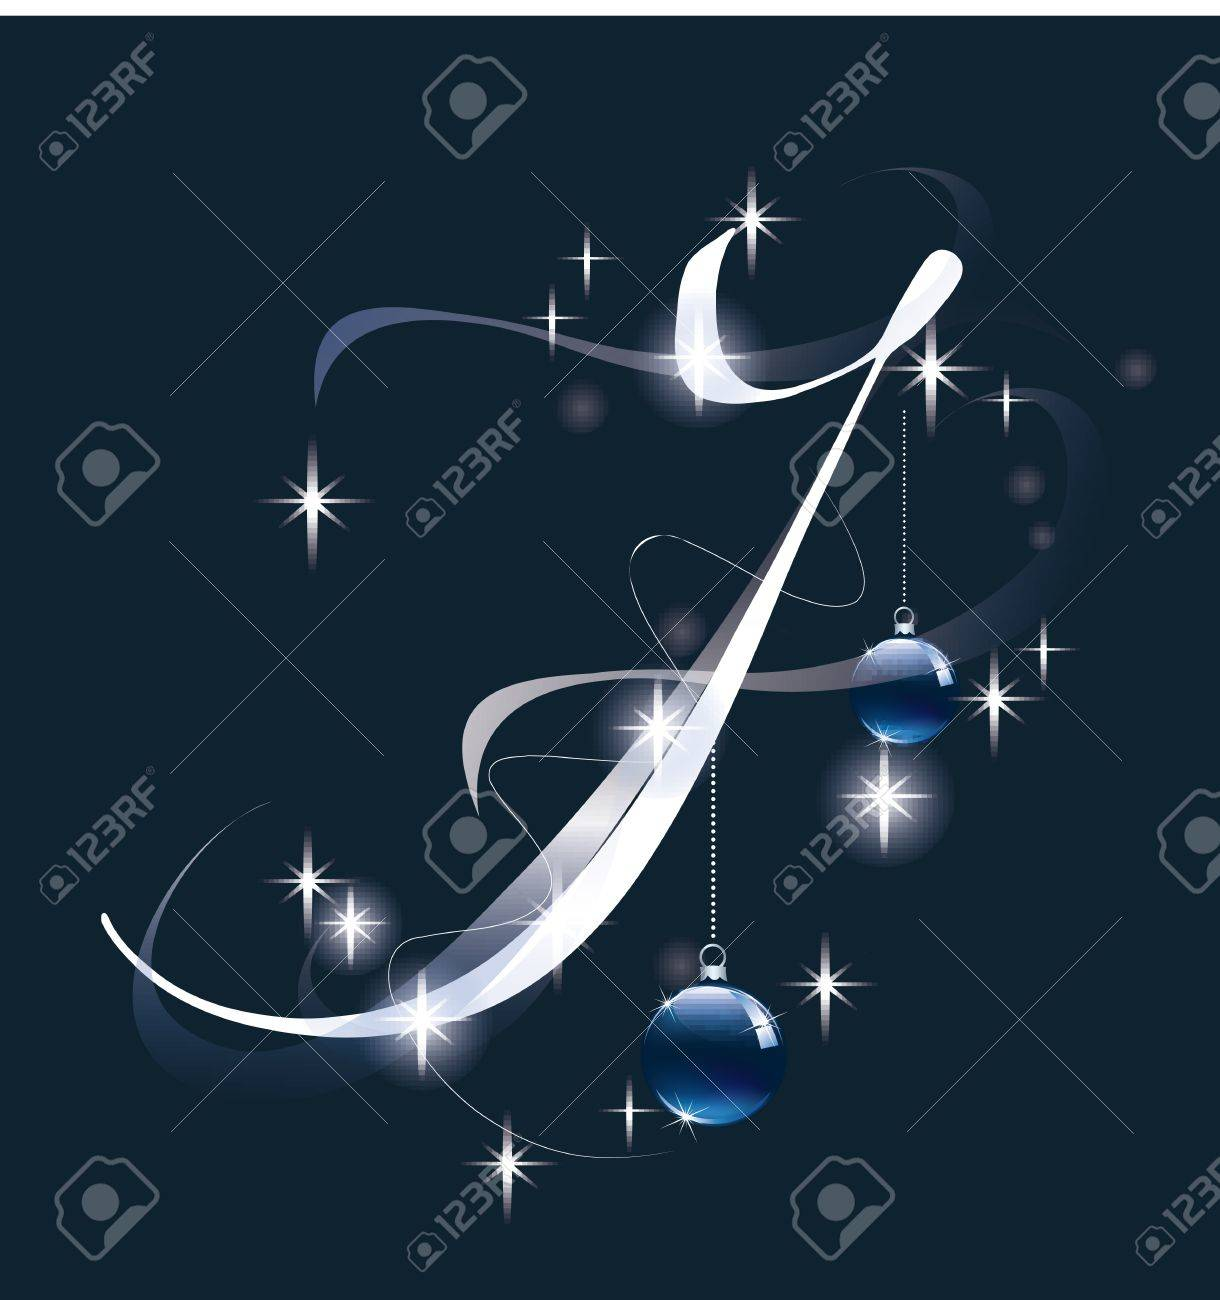 Decorative letter with decorations for Christmas design Stock Vector - 11599646